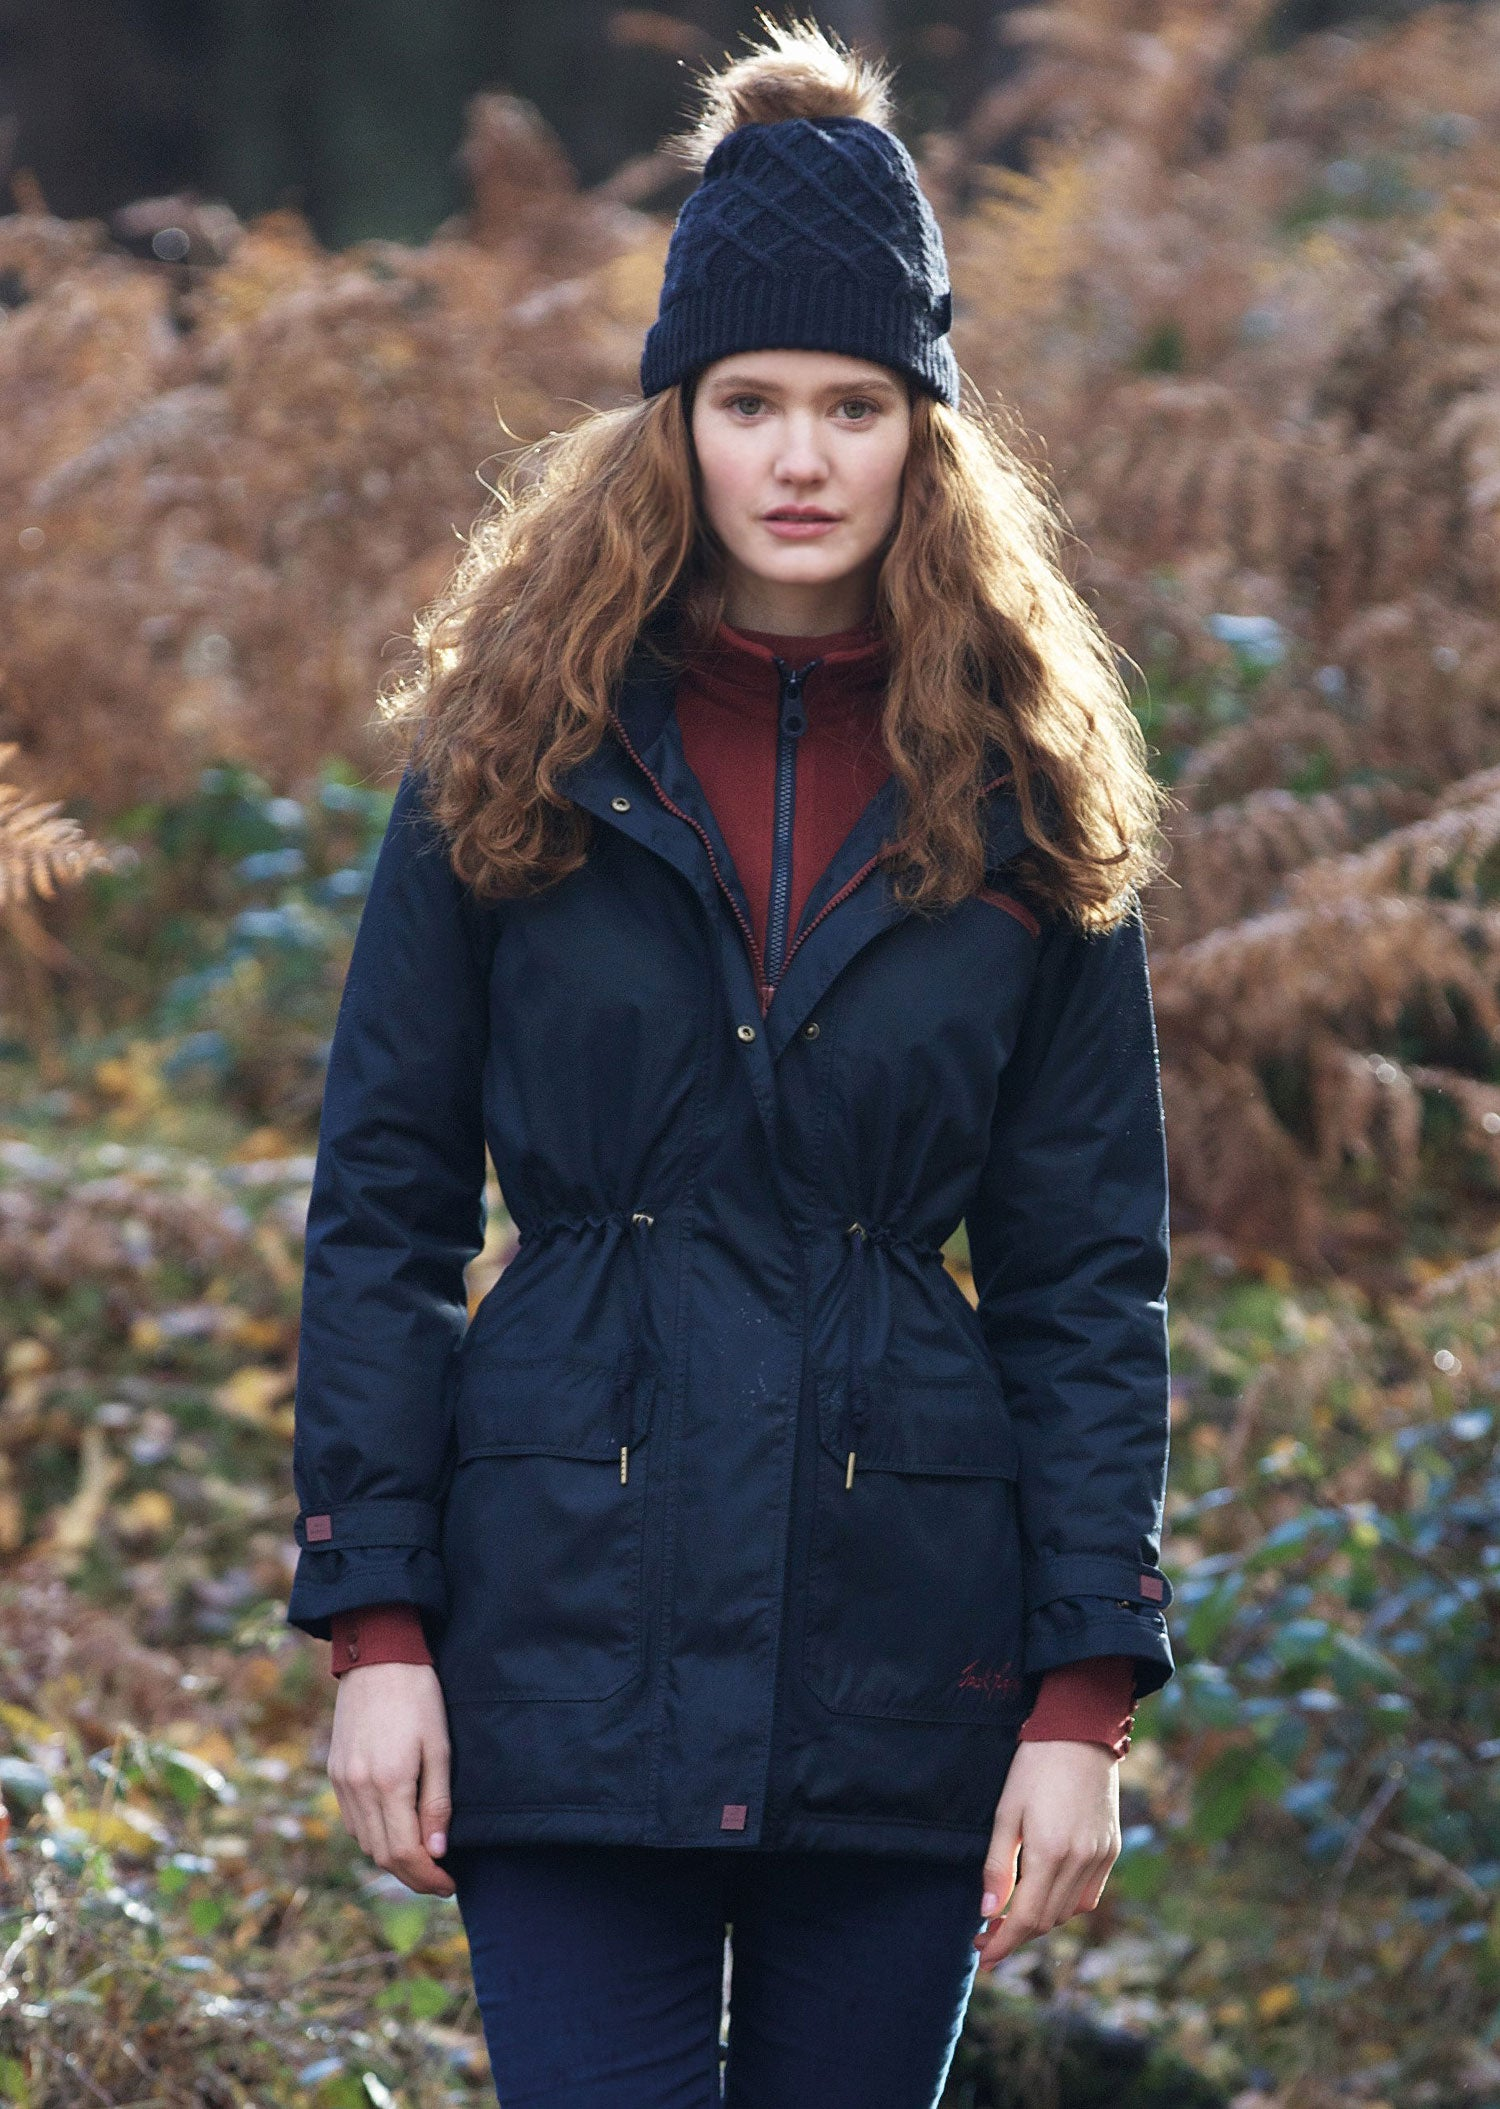 the ultimate dog walker's coat Brooke is all that and more, waterproof and breathable